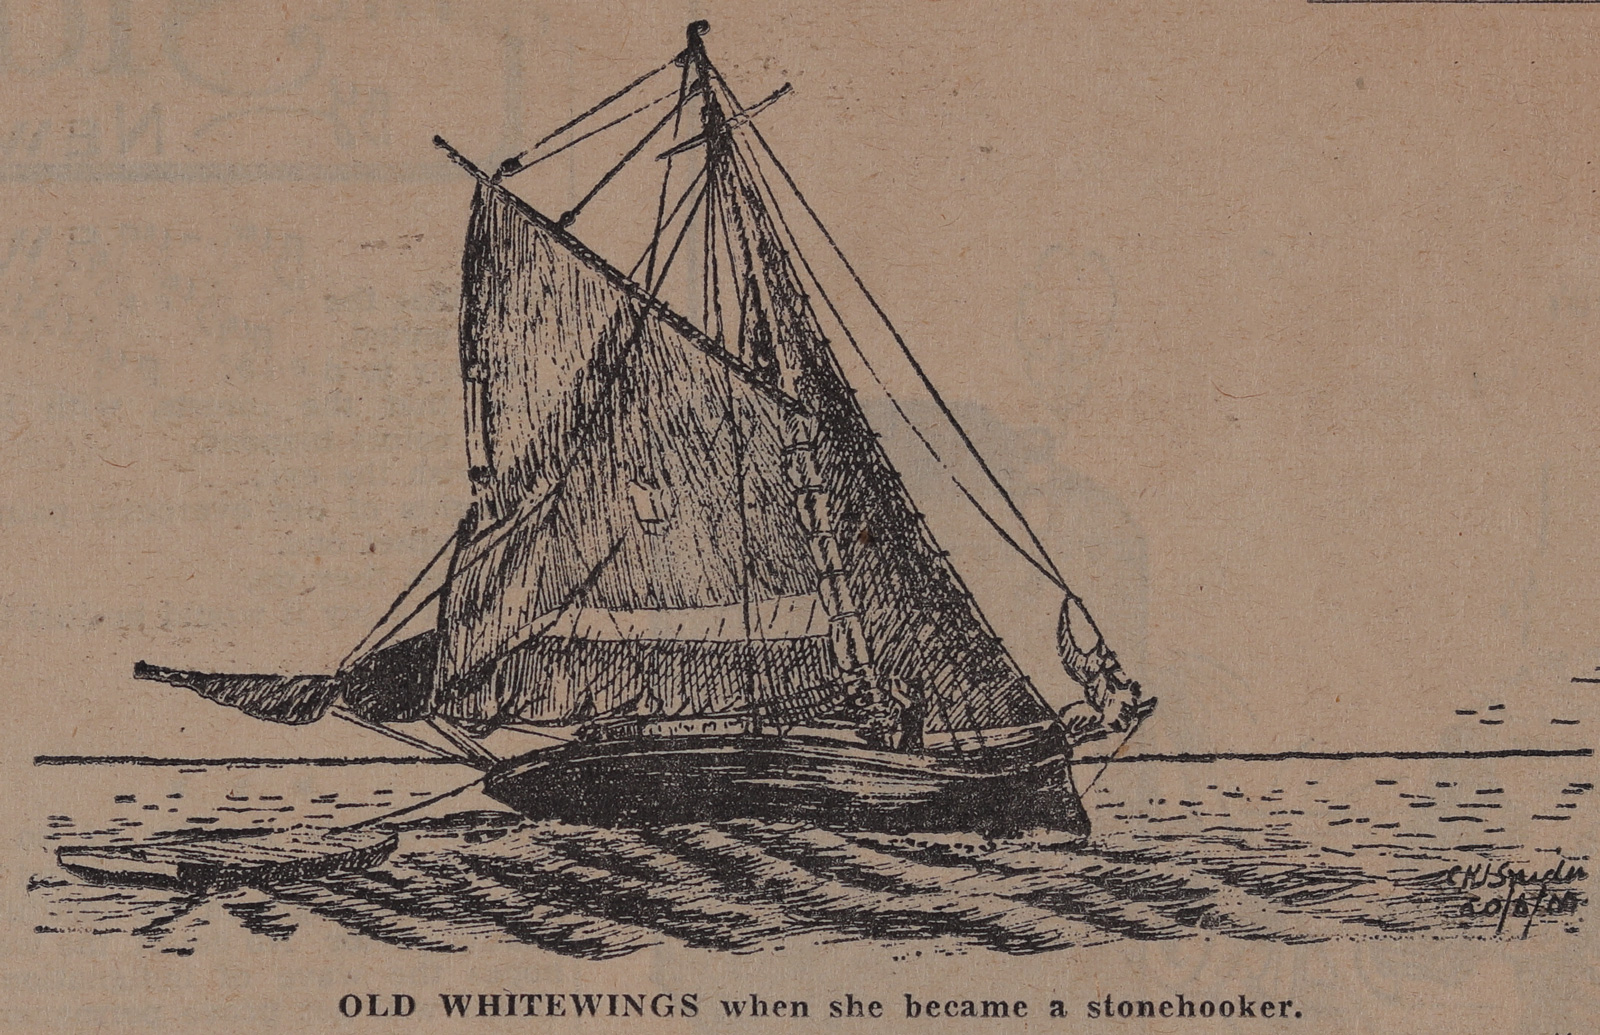 Old War Horse Spared the Colts: Schooner Days DXIV (514)